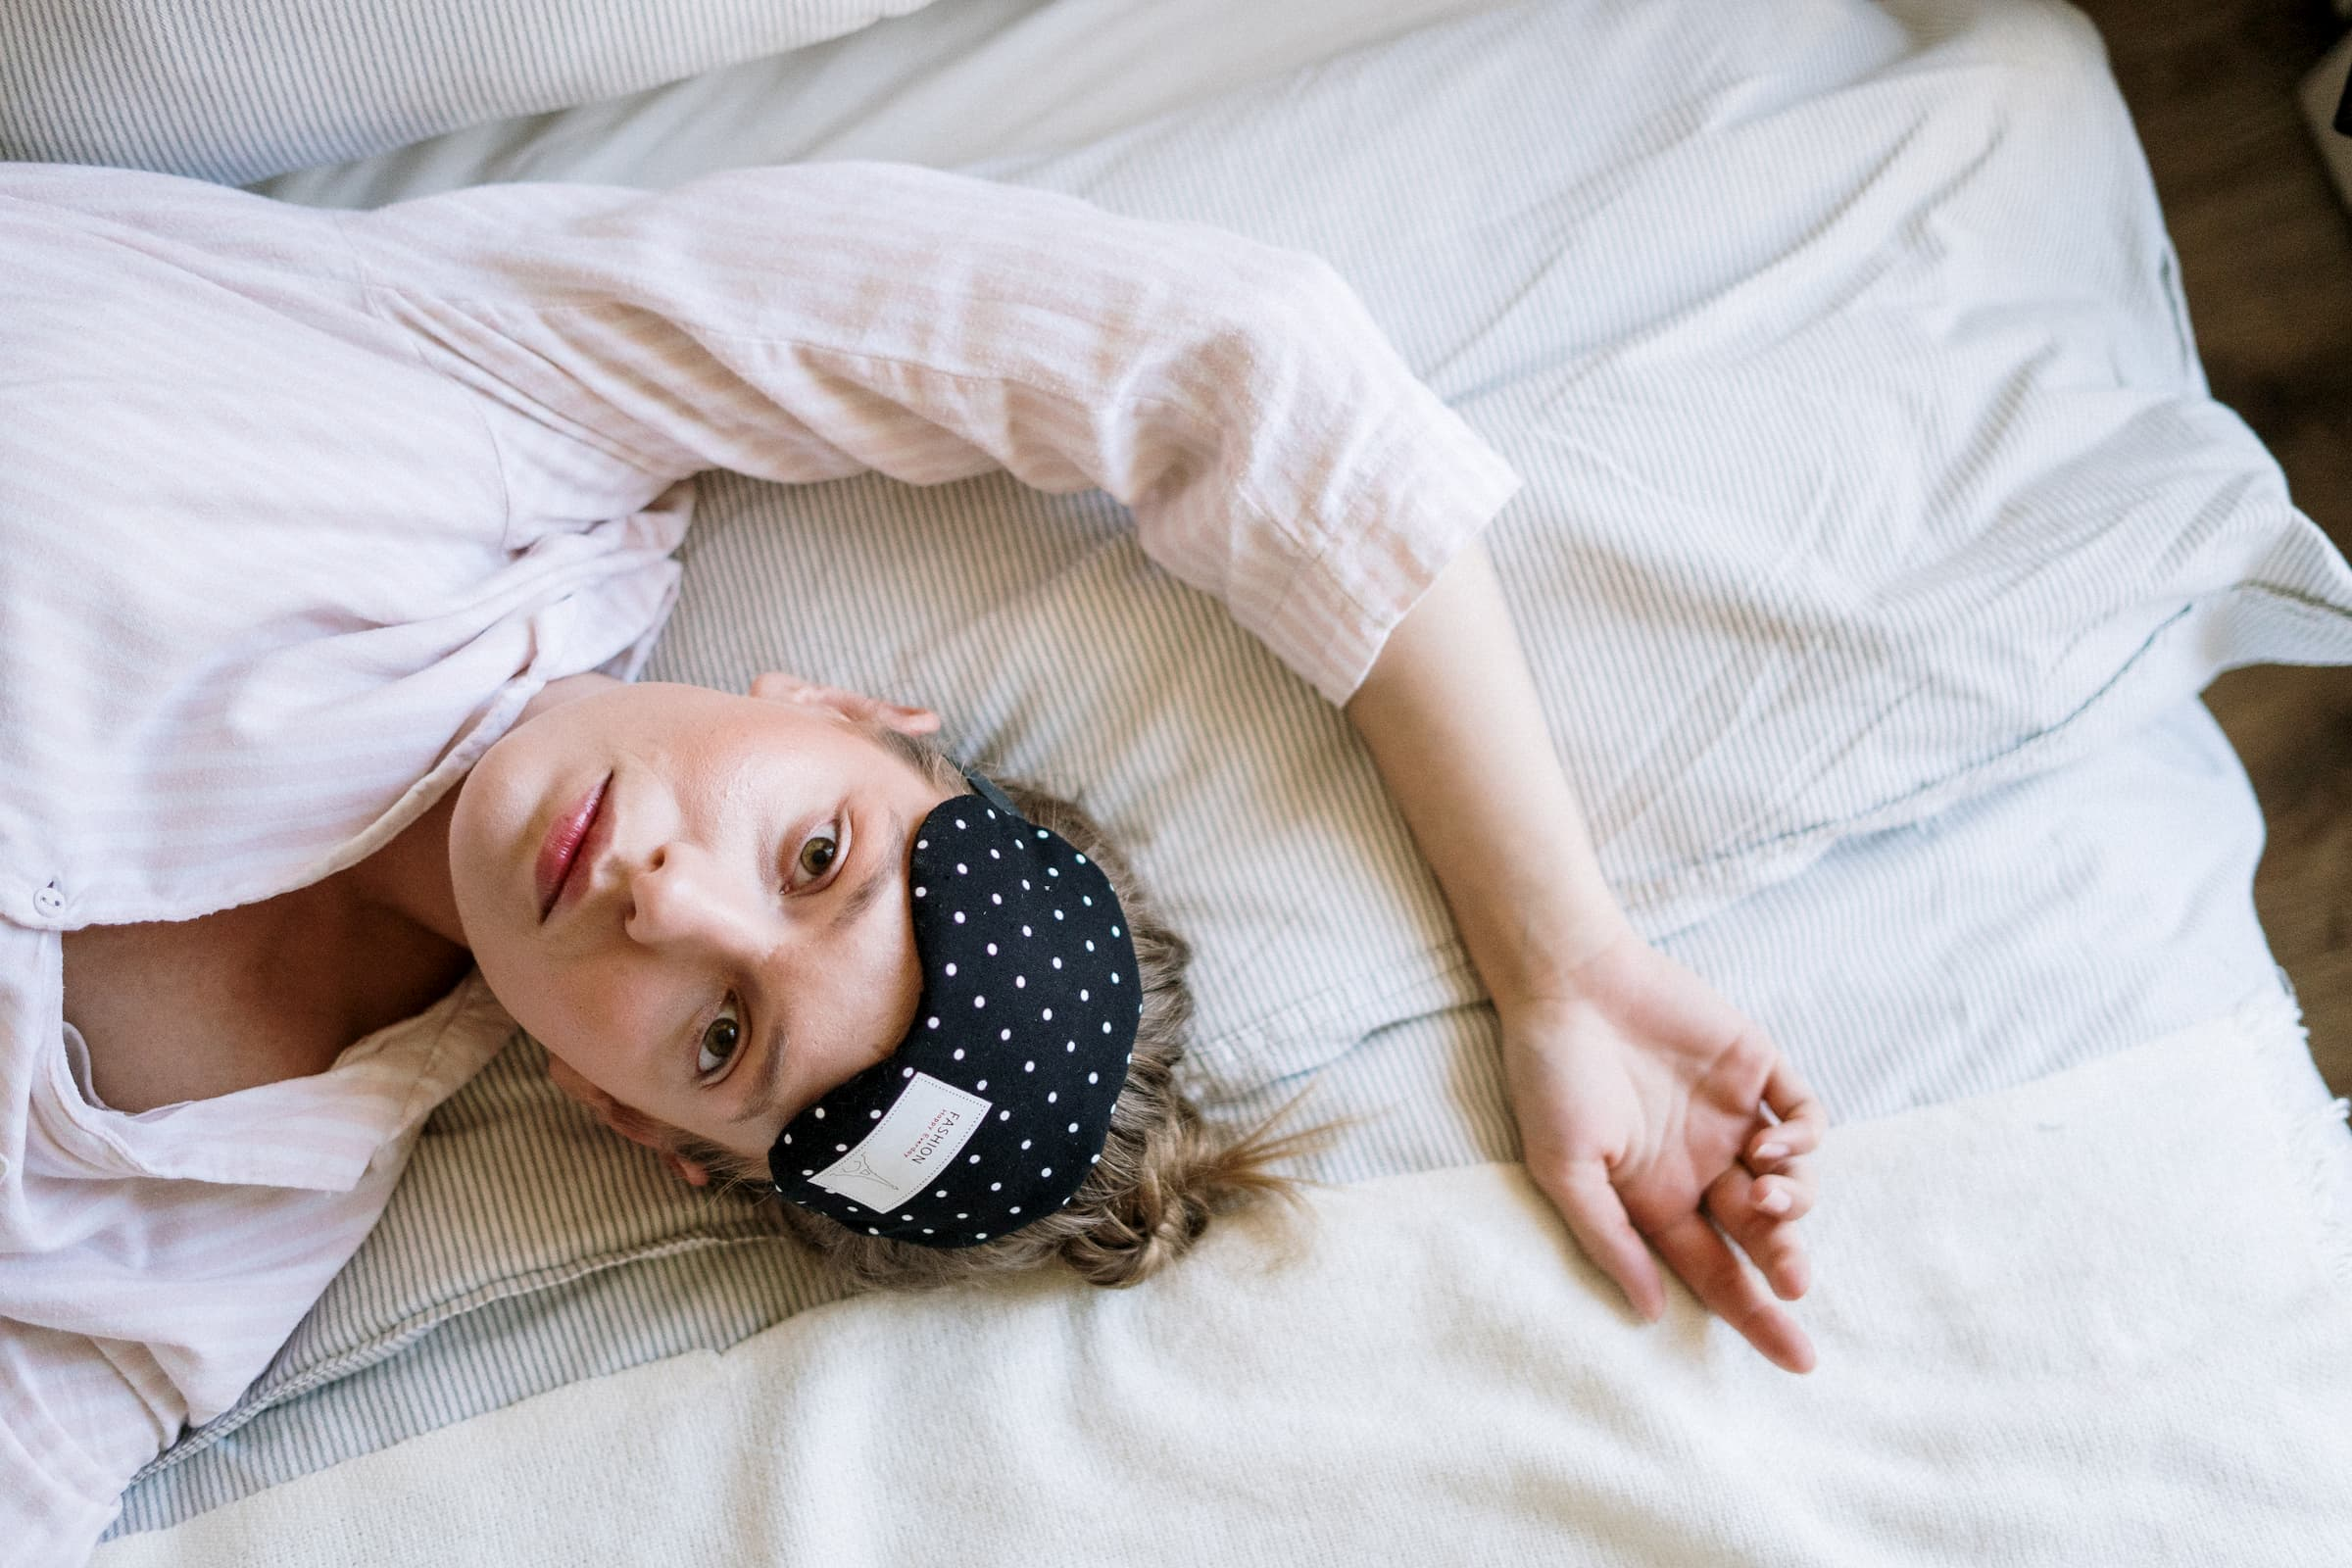 white woman in white shirt laying in bed with sleep mask raised because insomnia can't sleep, sleep disorders, wide awake